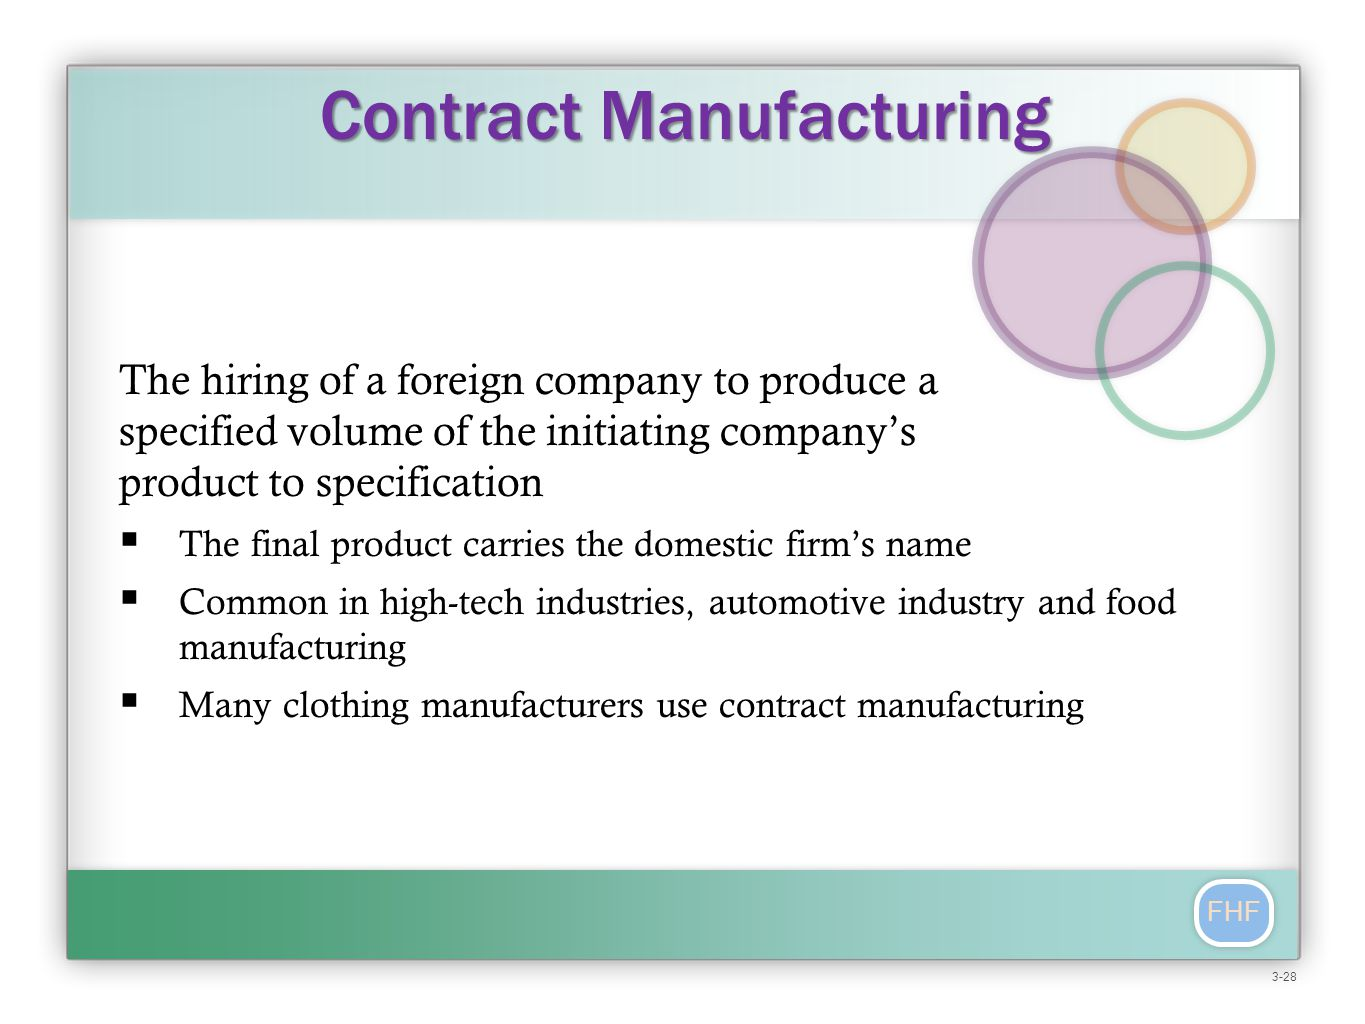 FHF The hiring of a foreign company to produce a specified volume of the initiating company's product to specification  The final product carries the domestic firm's name  Common in high-tech industries, automotive industry and food manufacturing  Many clothing manufacturers use contract manufacturing Contract Manufacturing 3-28